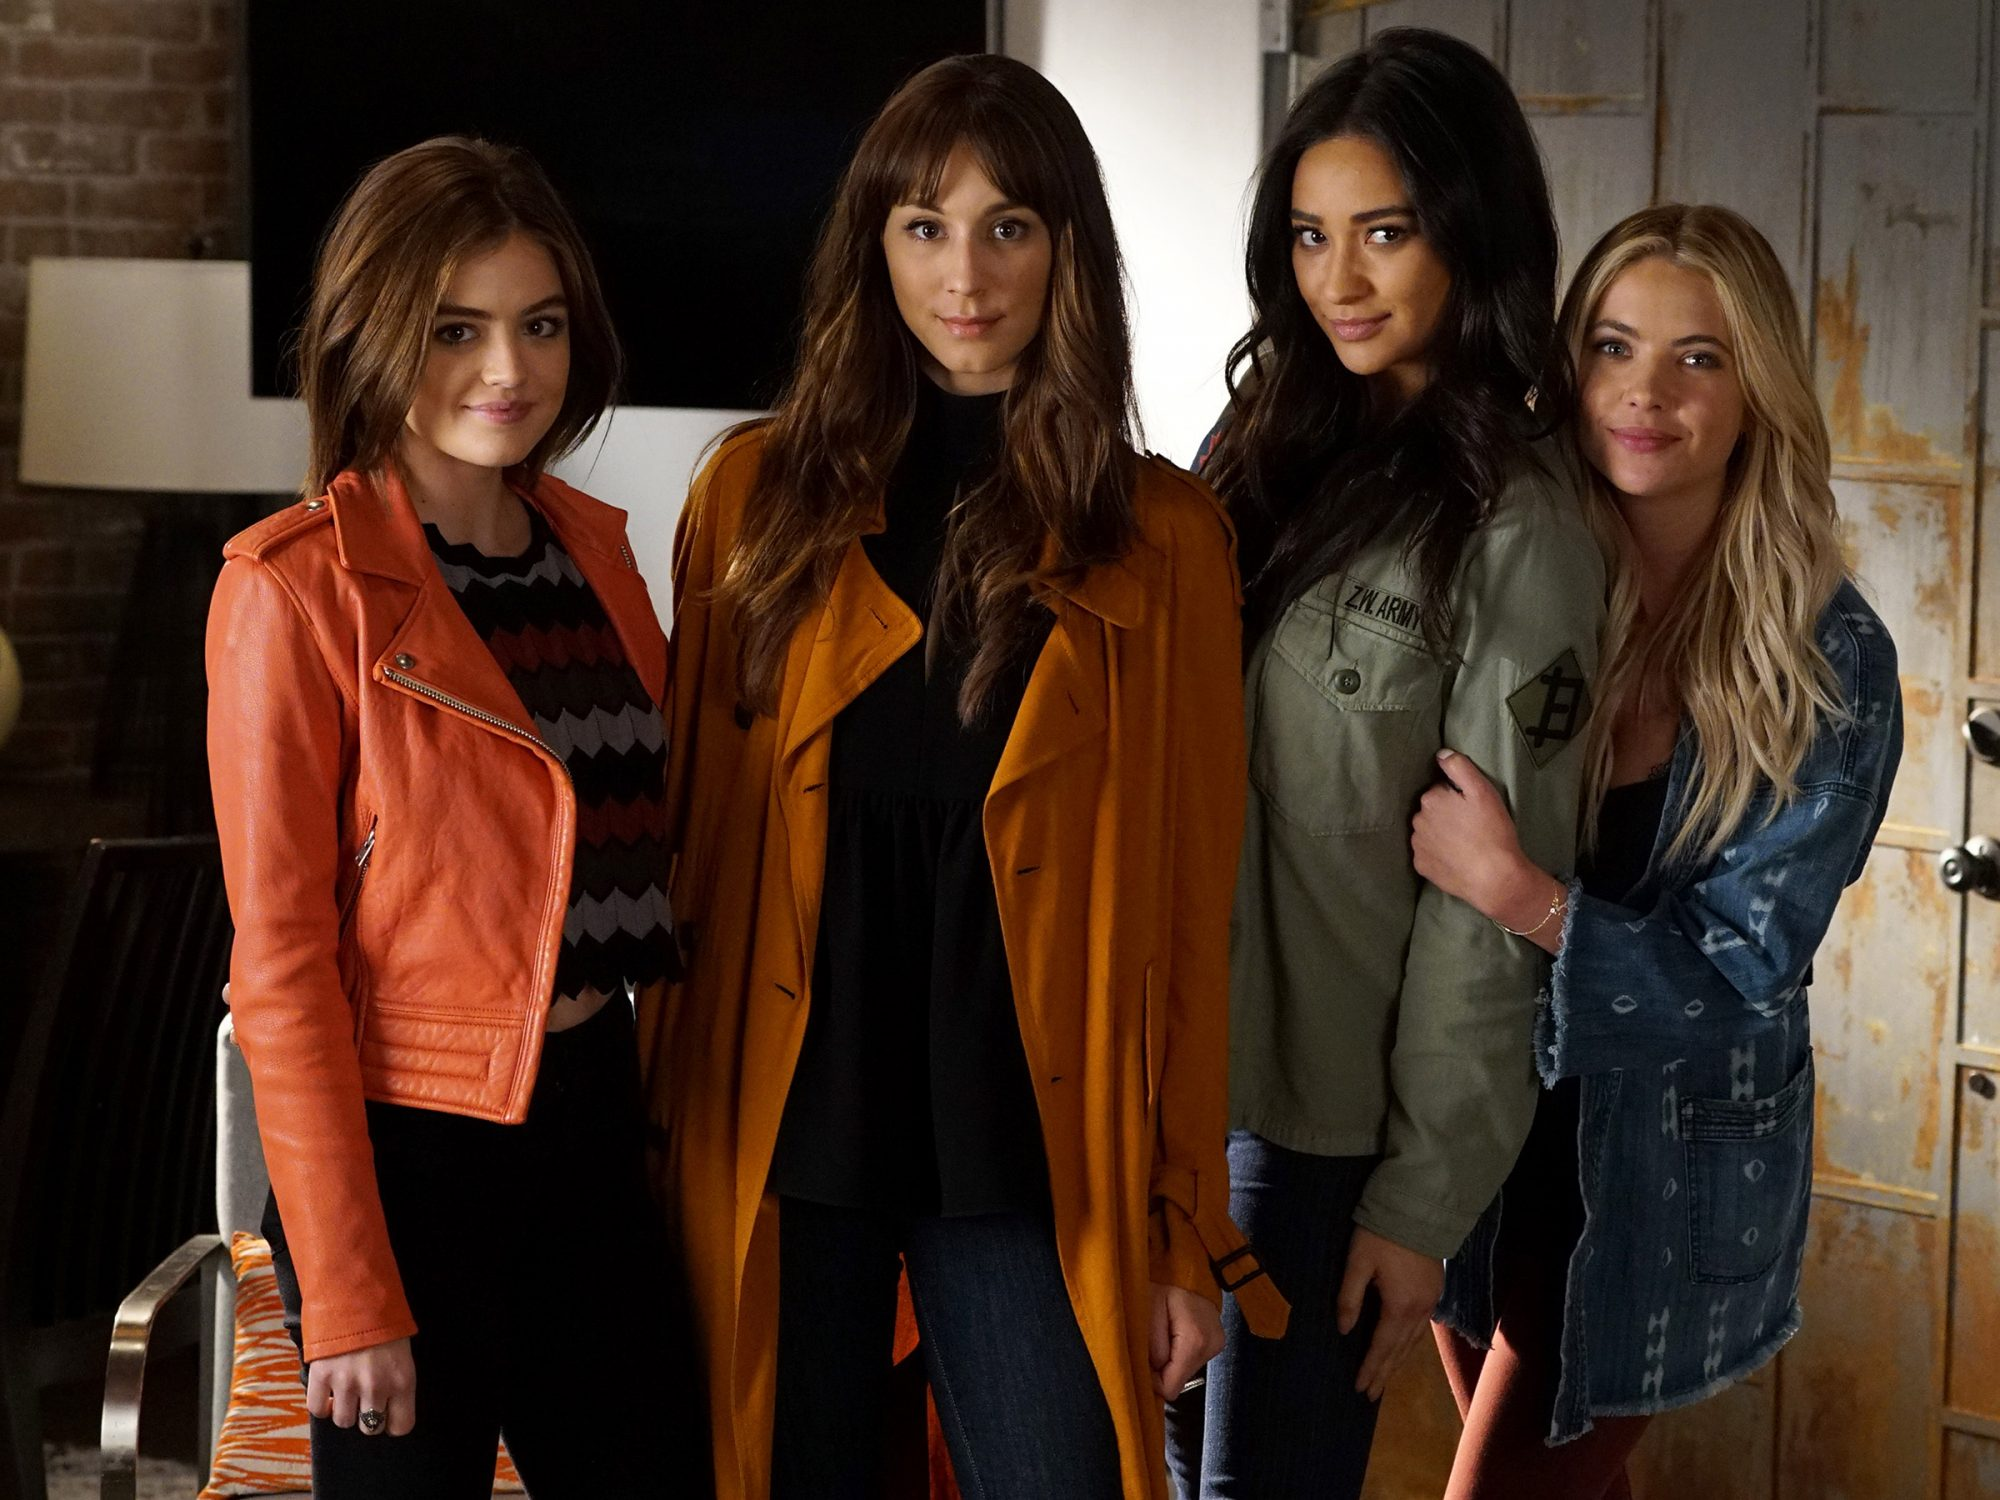 LUCY HALE, TROIAN BELLISARIO, SHAY MITCHELL, ASHLEY BENSON